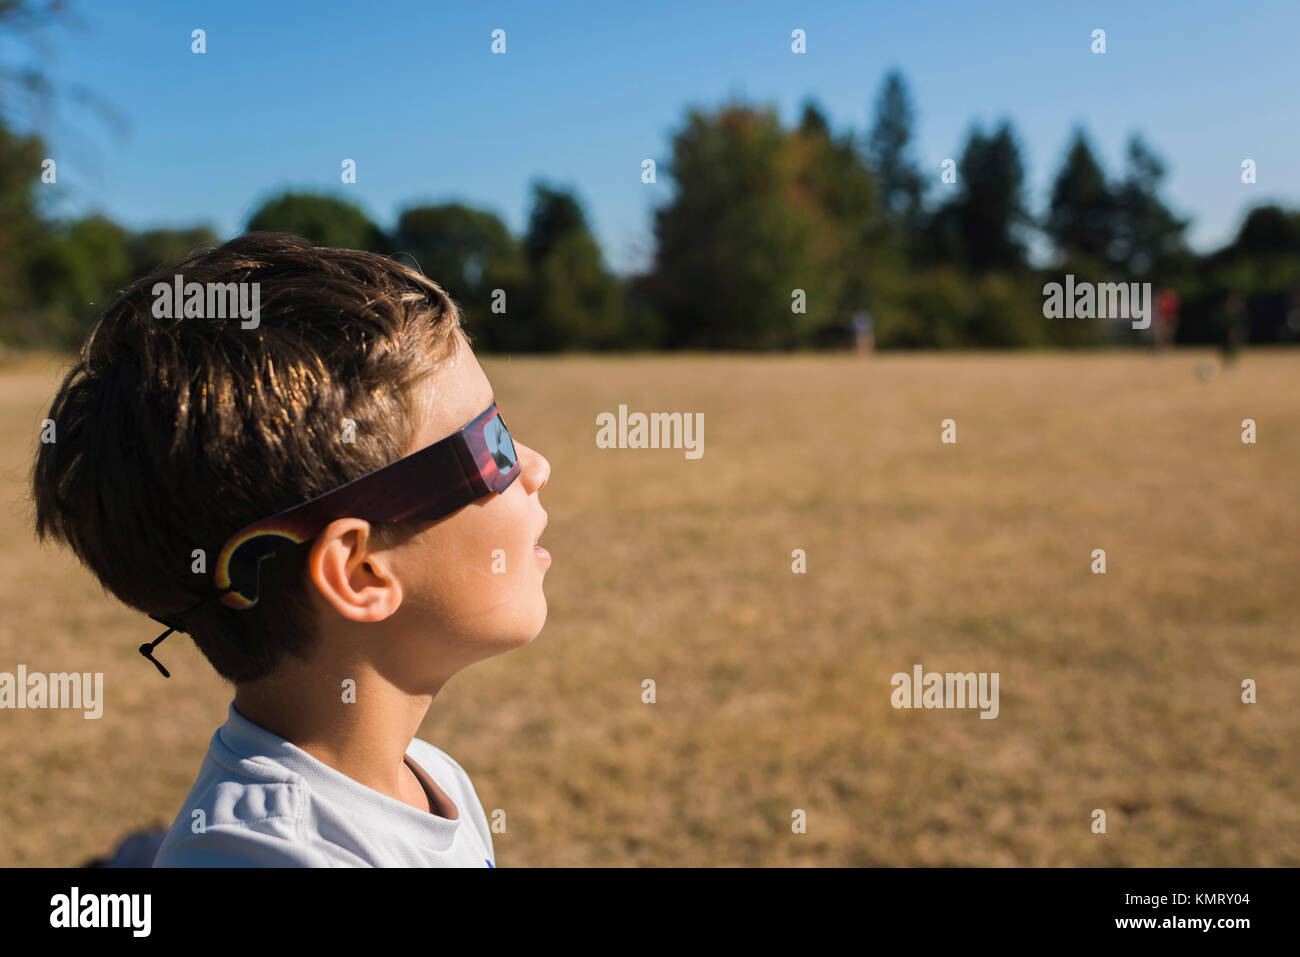 Side view of boy wearing 3-D glasses while looking away at field during sunny day - Stock Image